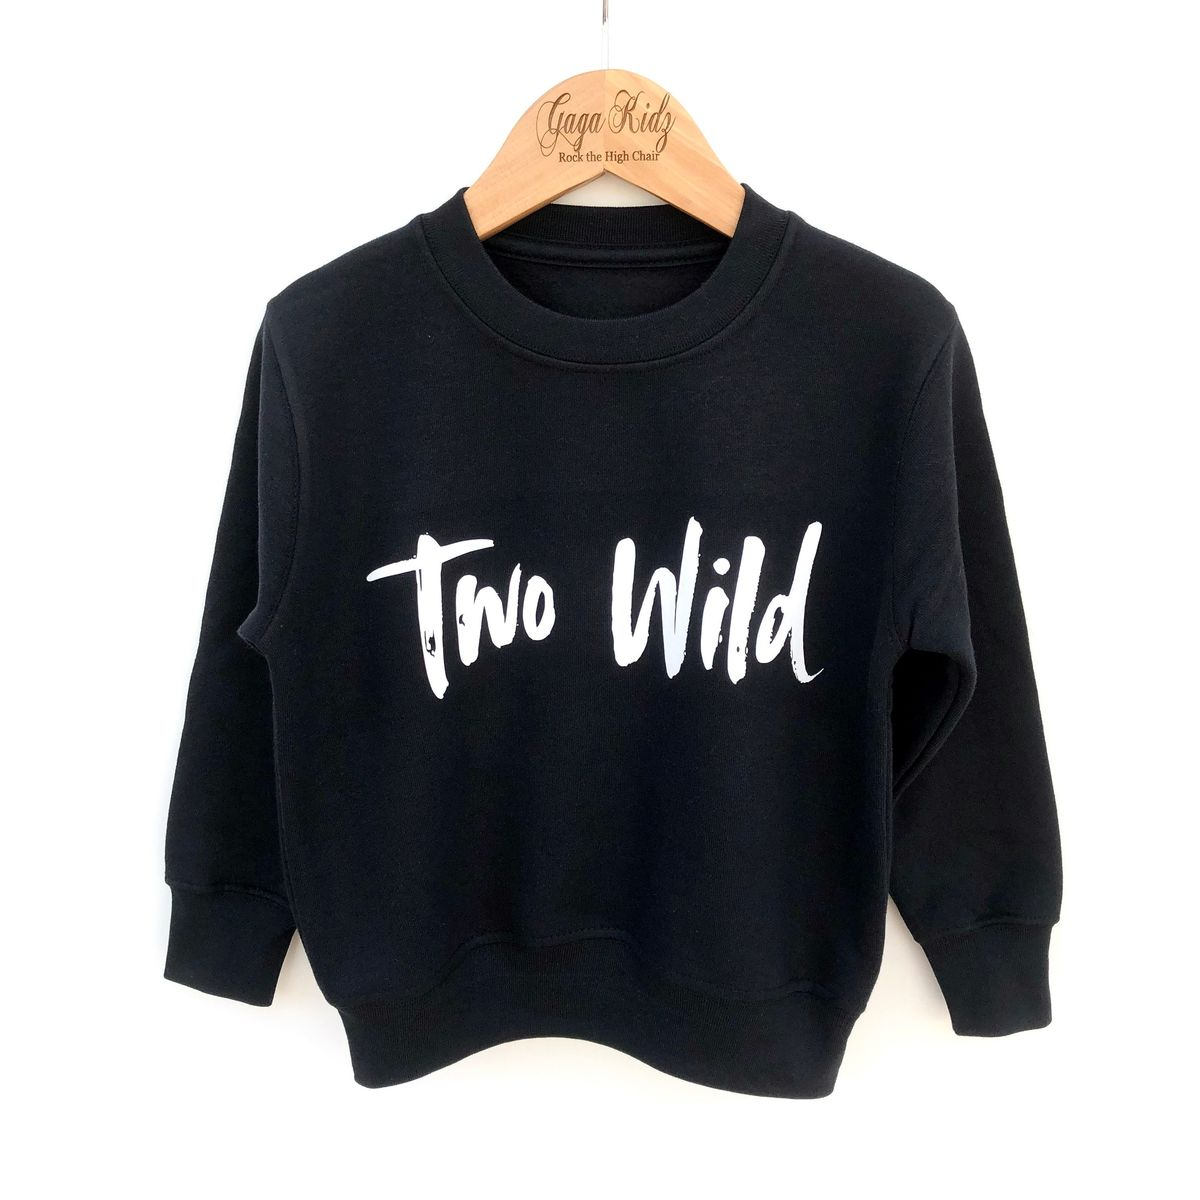 Two Wild Birthday Sweatshirt - product images  of